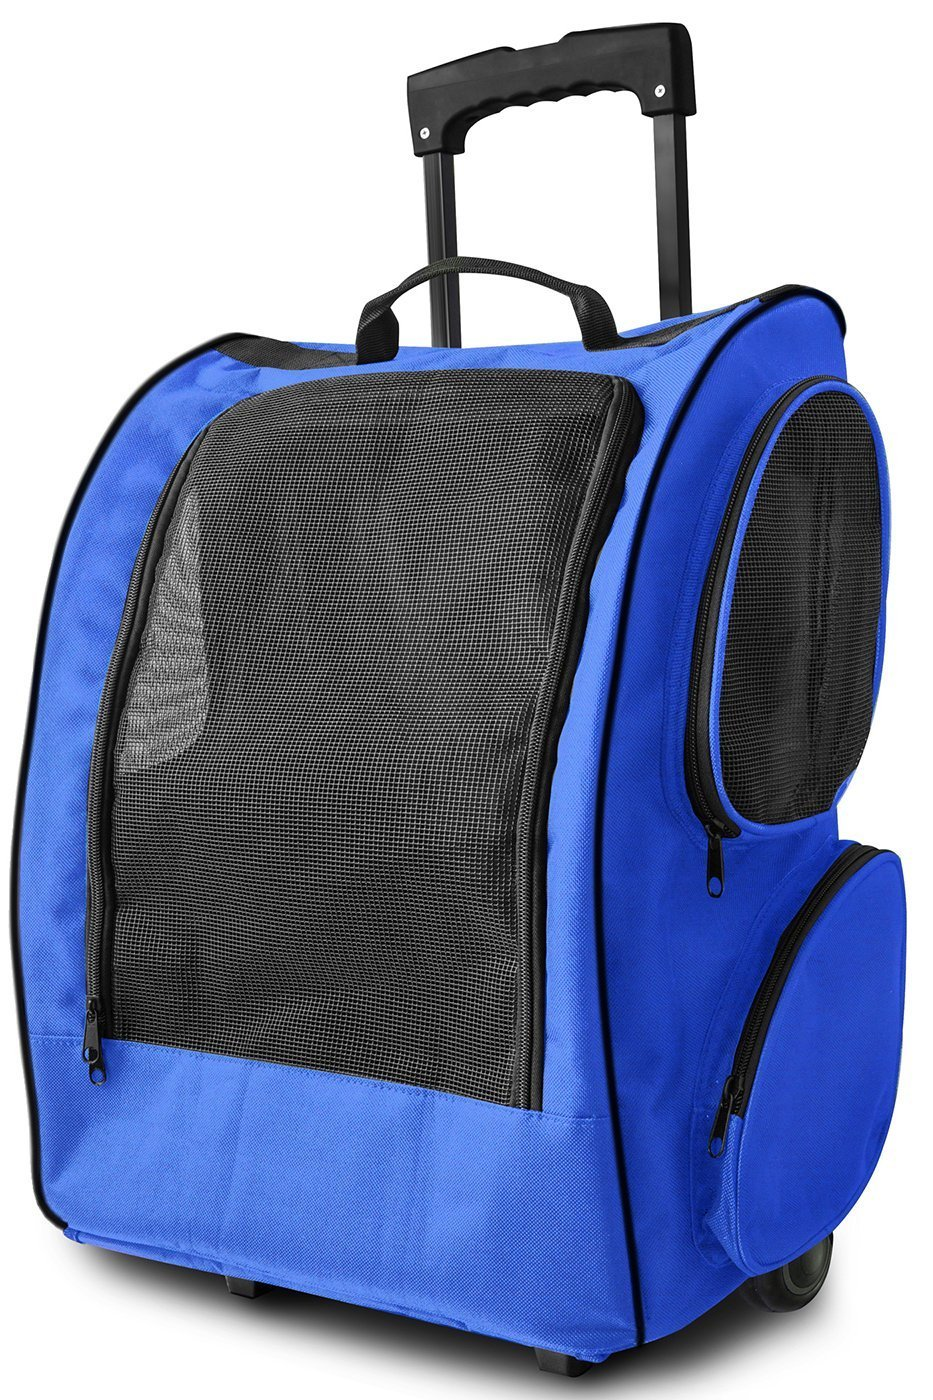 OxGord Rolling Backpack Travel Pet Carrier for Cats Dogs and Rabbits, Blue